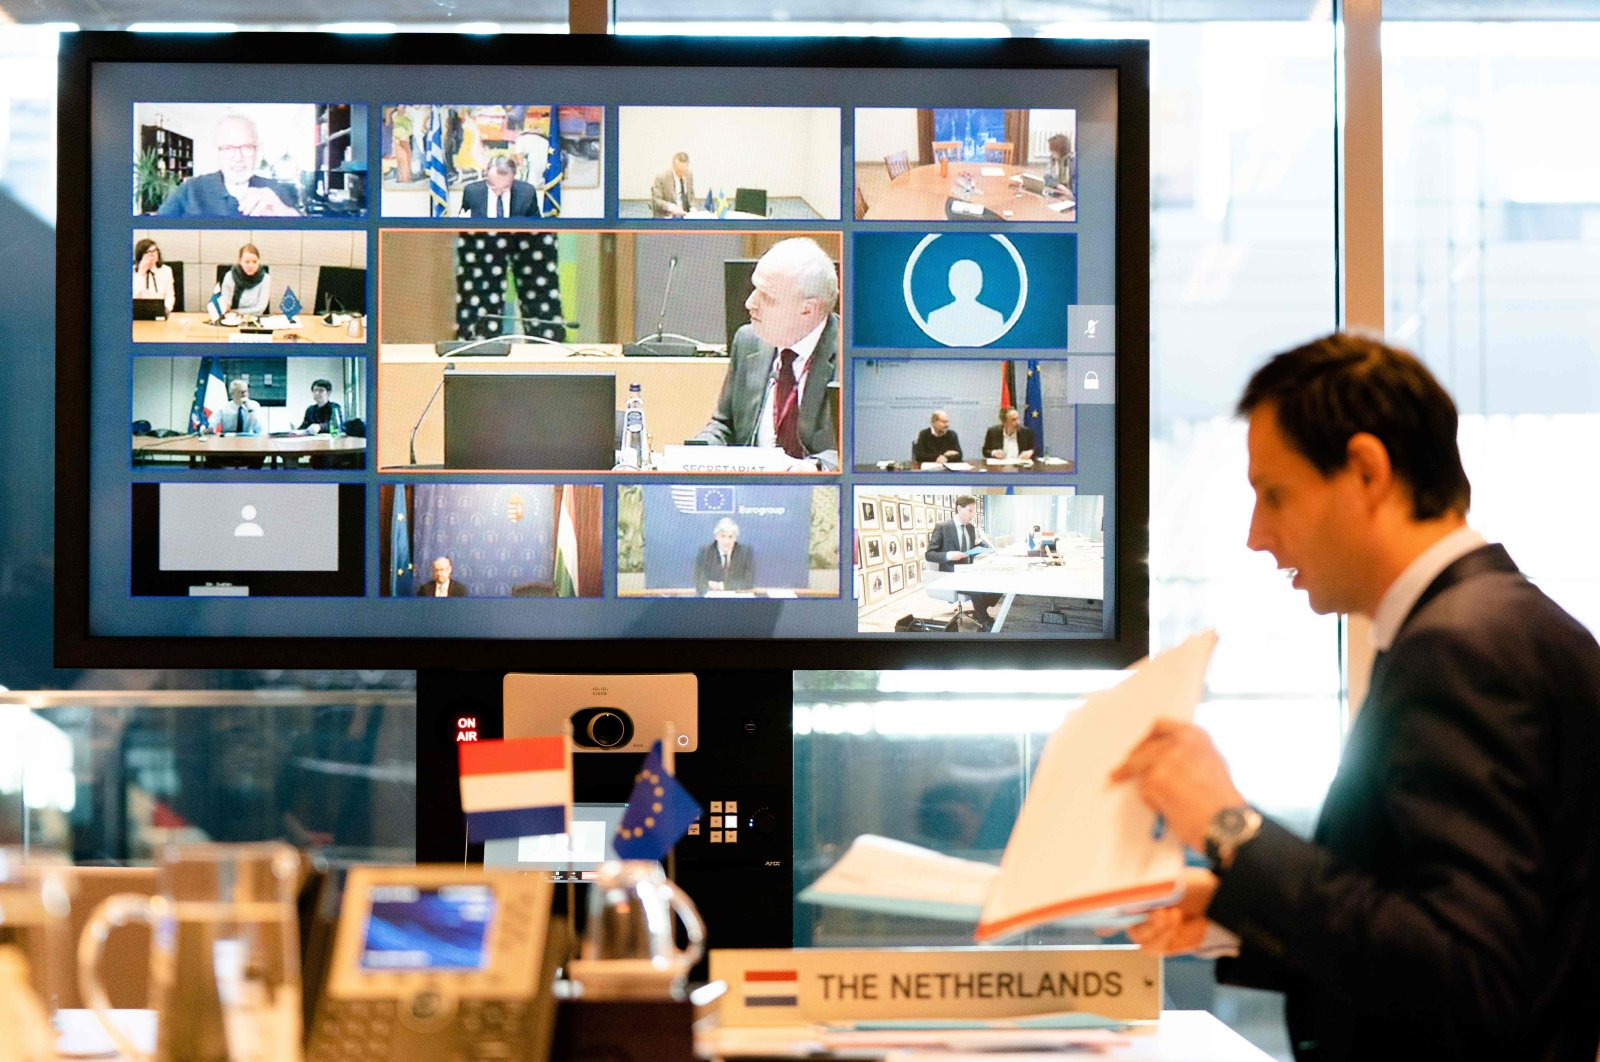 The finance minister of the Netherlands, Wopke Hoekstra, looks on during a videoconference with EU finance ministers in The Hague during discussions on the economic effects of the ongoing coronavirus situation, Tuesday, April 7, 2020.